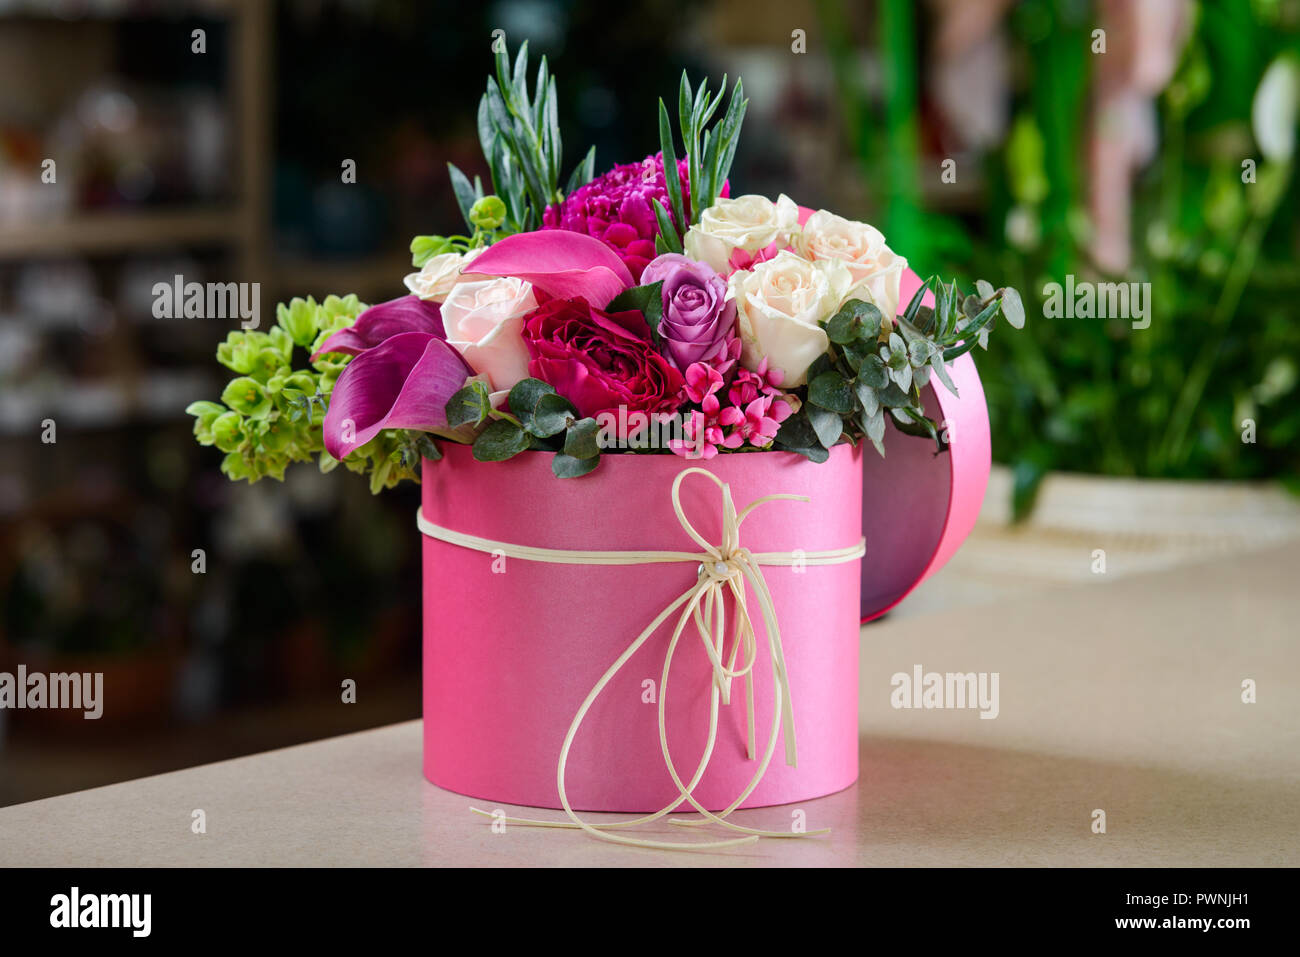 Flower Delivery Box Stock Photos Flower Delivery Box Stock Images